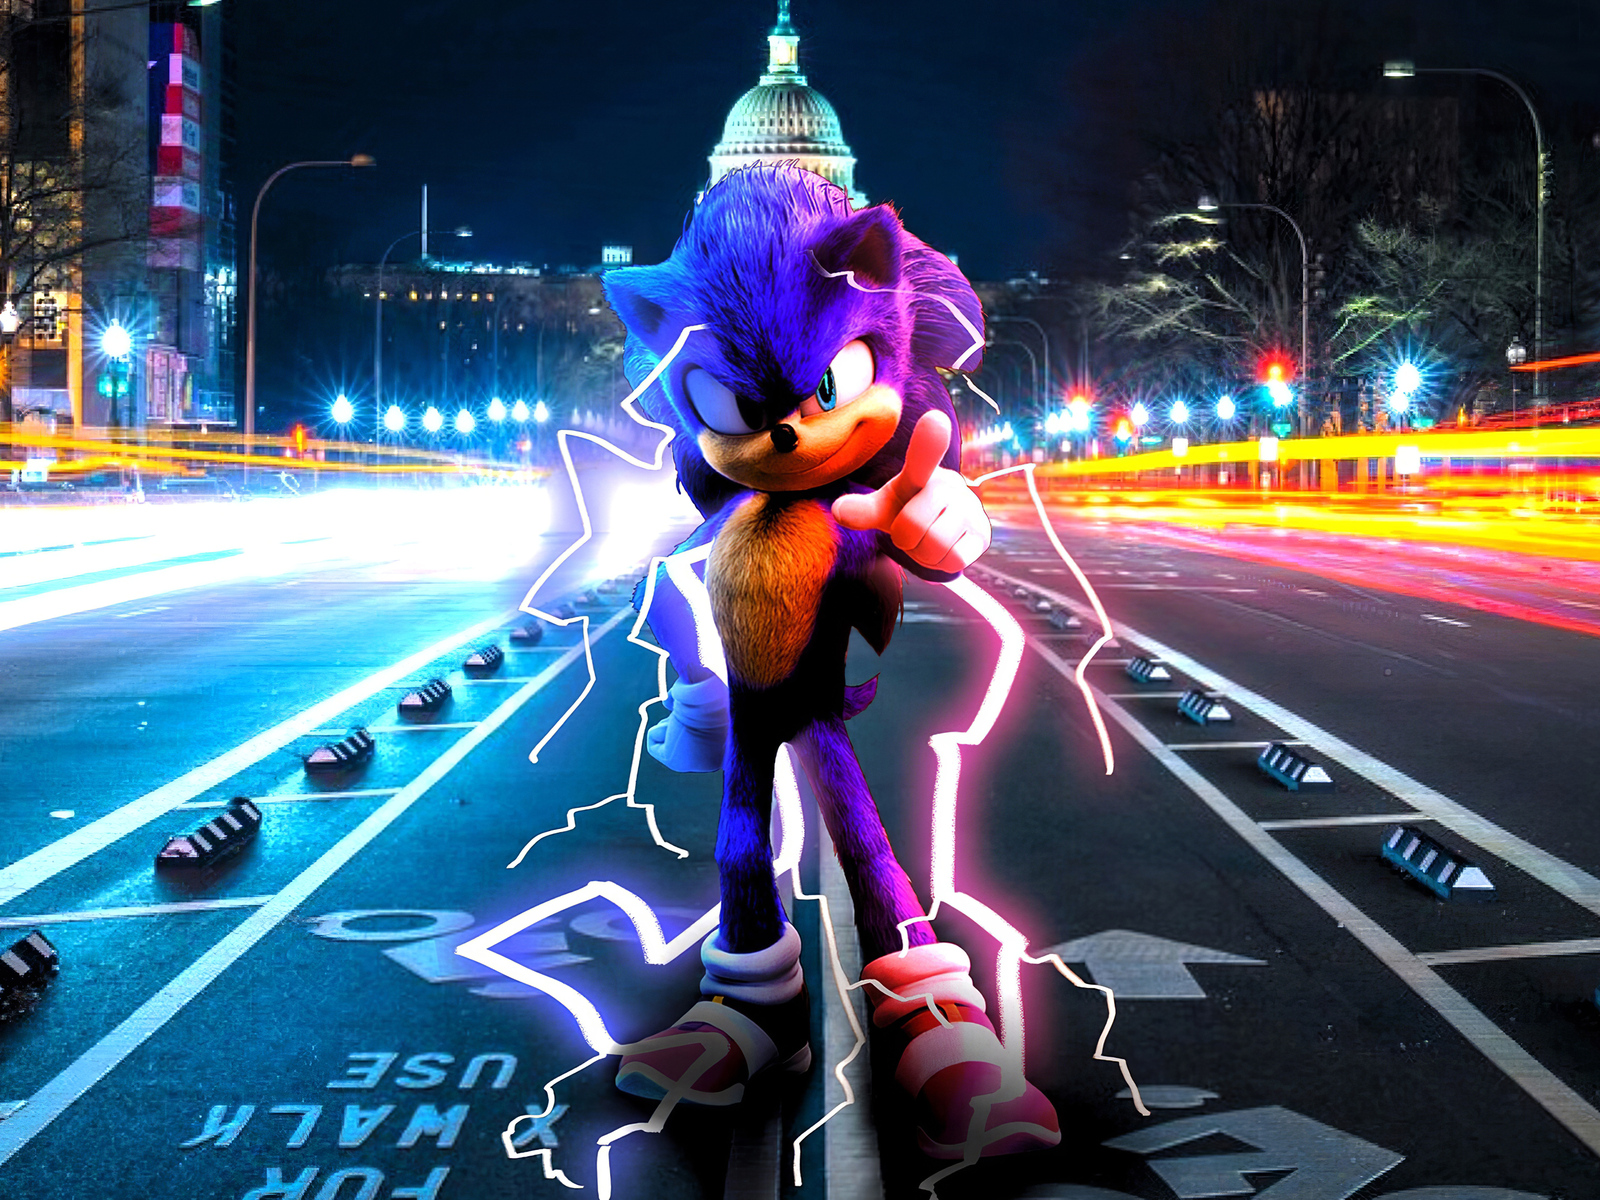 2020-sonic-the-hedgehog4k-s3.jpg